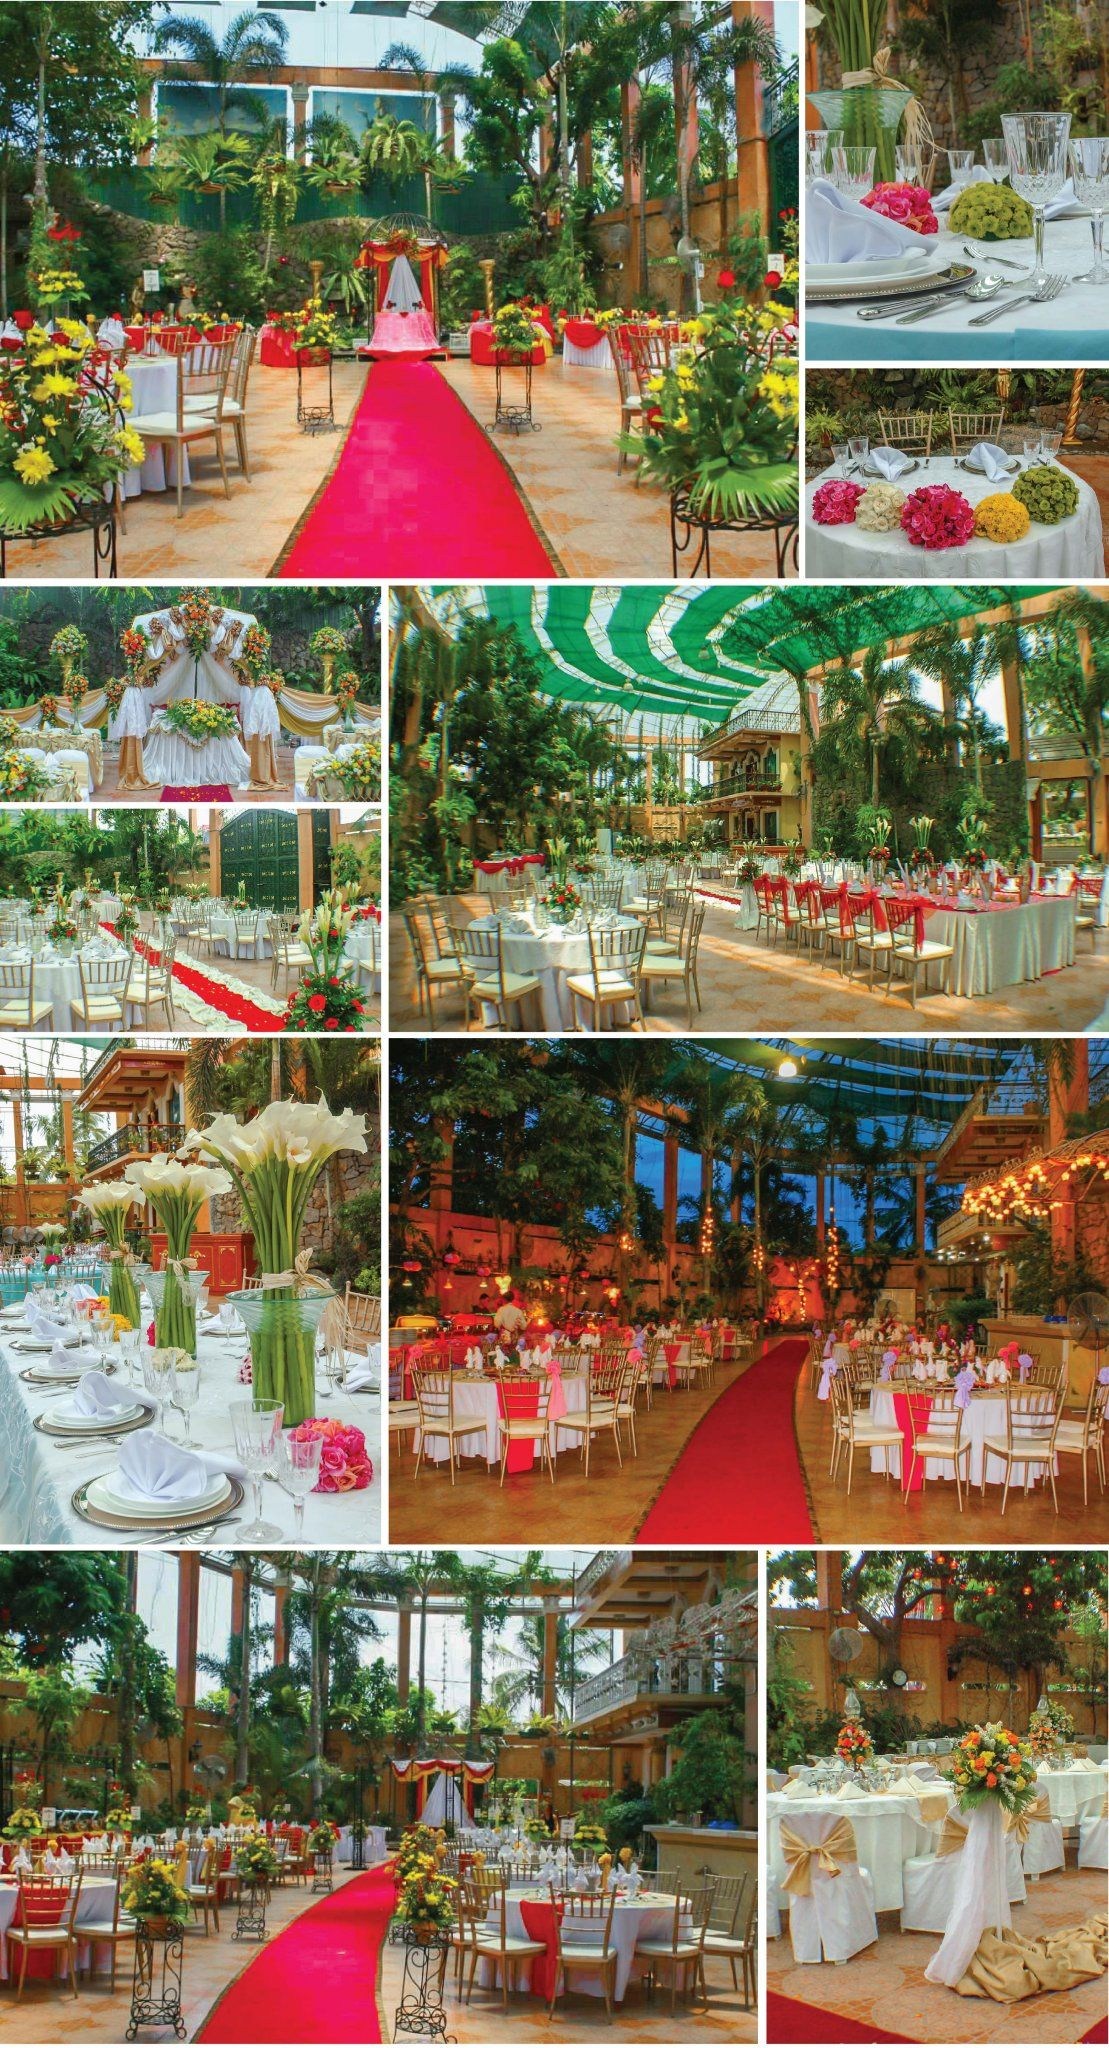 Grand Waterfalls Wedding Reception Venue Catering Services Bulacan Hizon S Catering Waterfall Wedding Wedding Reception Venues Backyard Wedding Catering